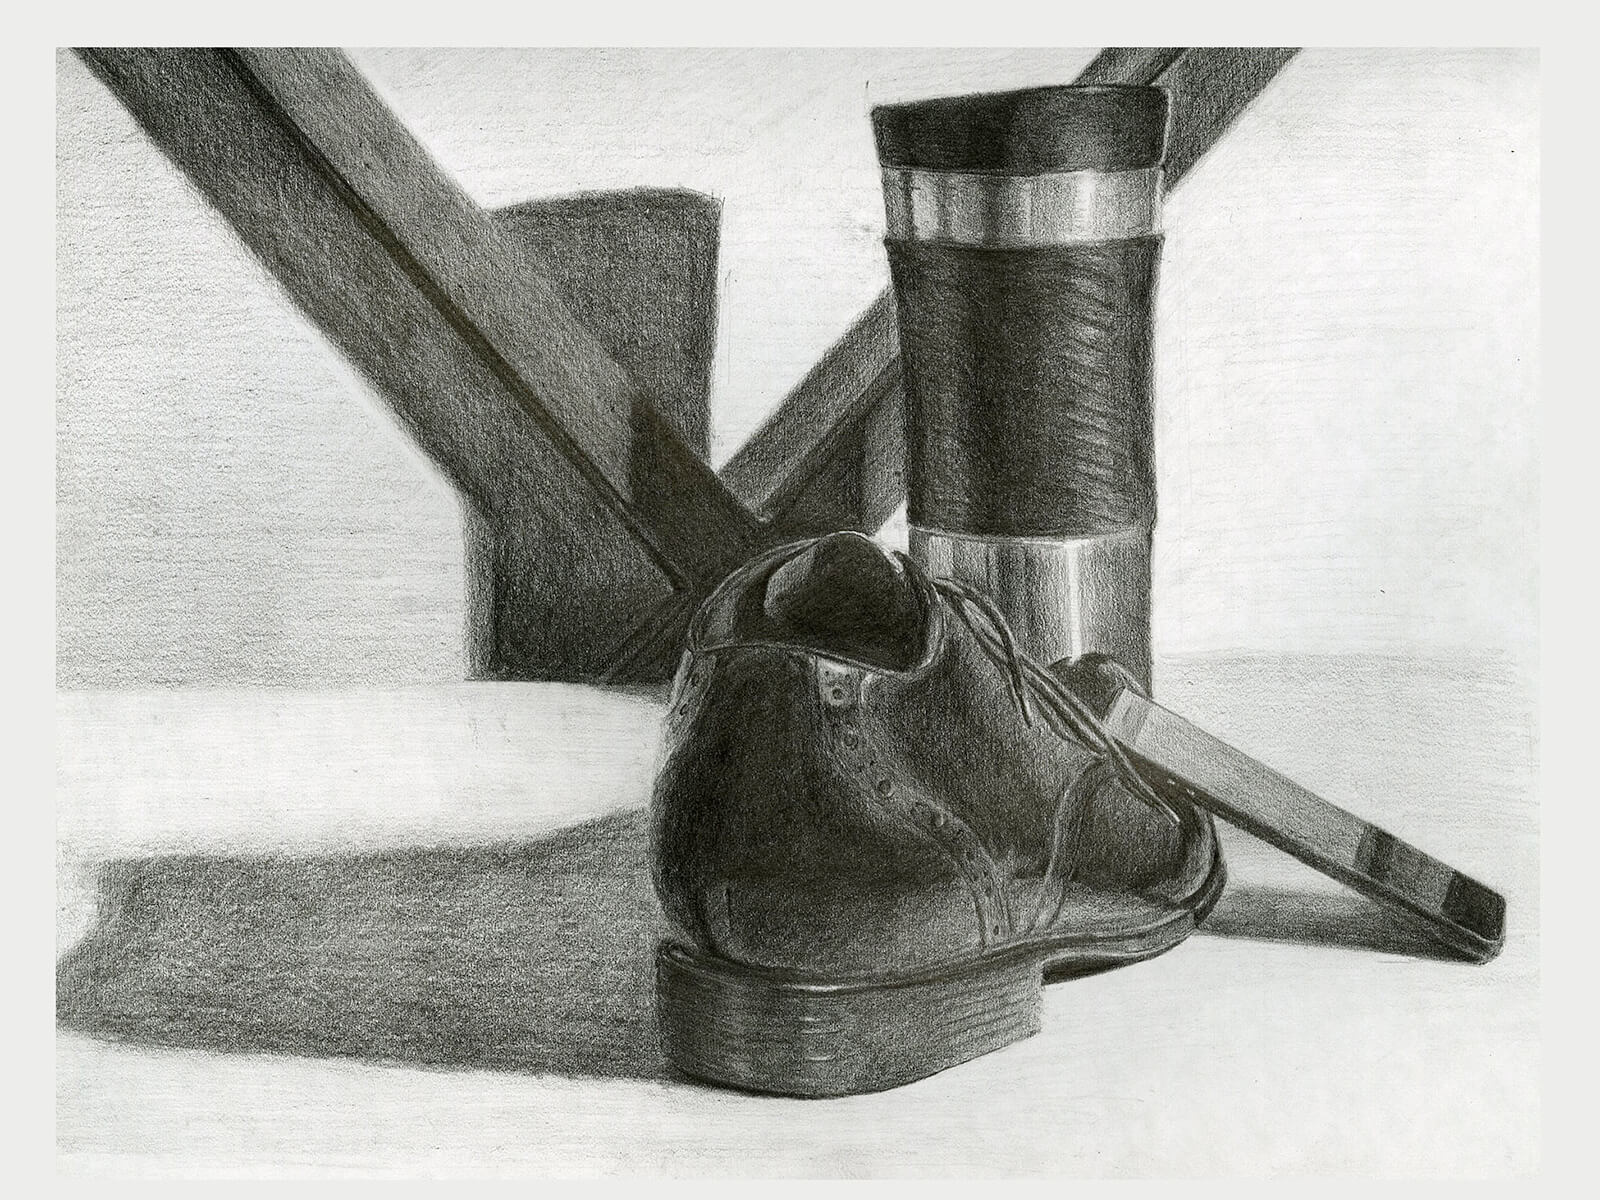 black and white still-life drawing of a travel coffee mug and man's dress shoe